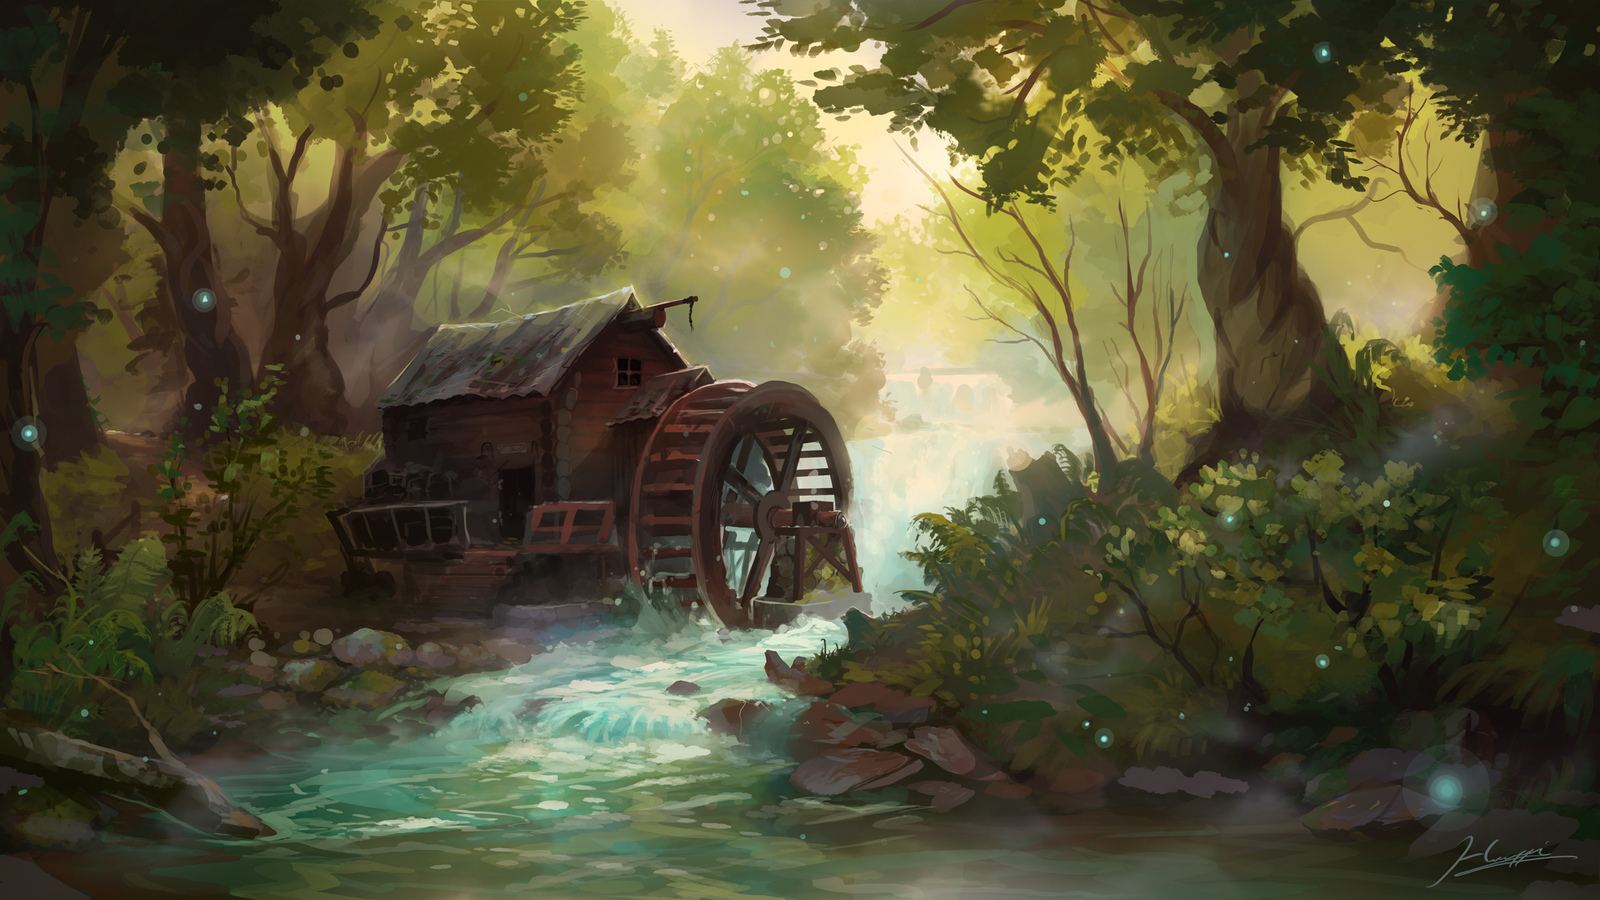 The Old Mill by Huussii on DeviantArt